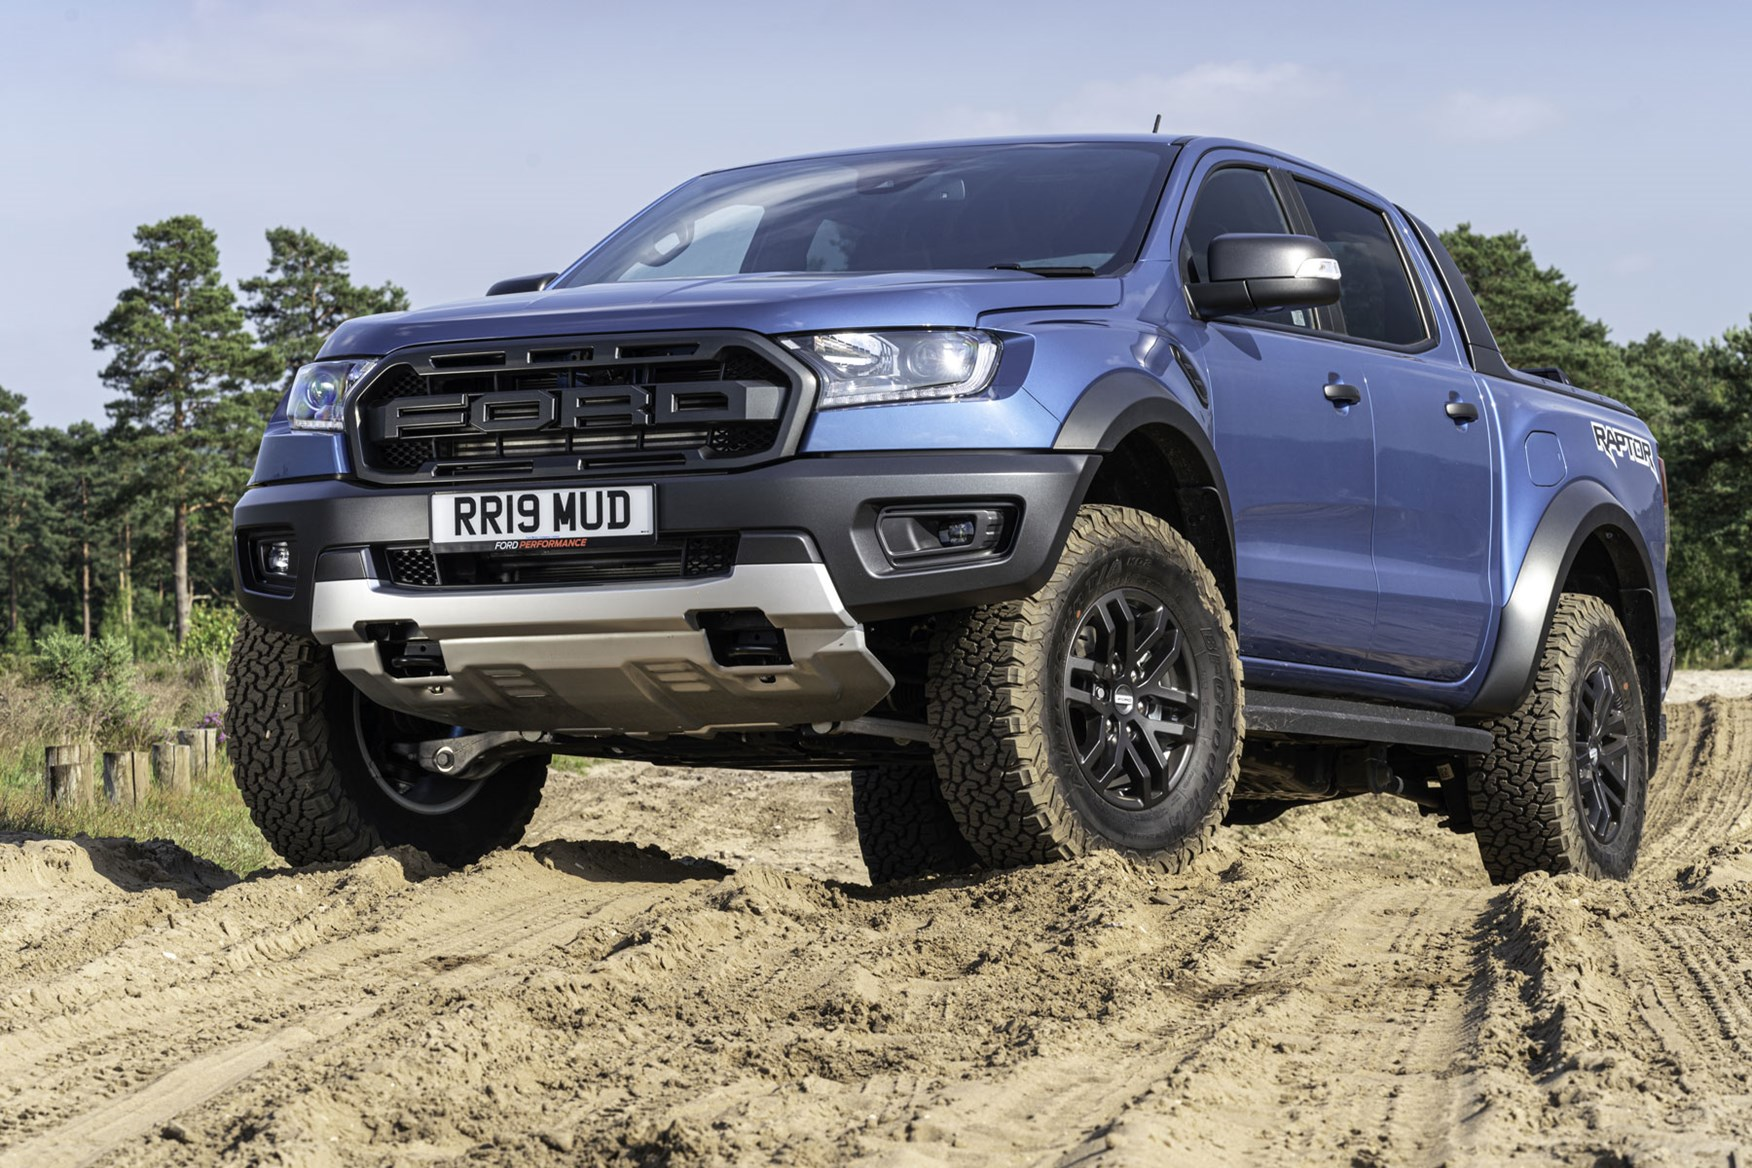 Ford Ranger Raptor review - front view, blue, off-road, 2019